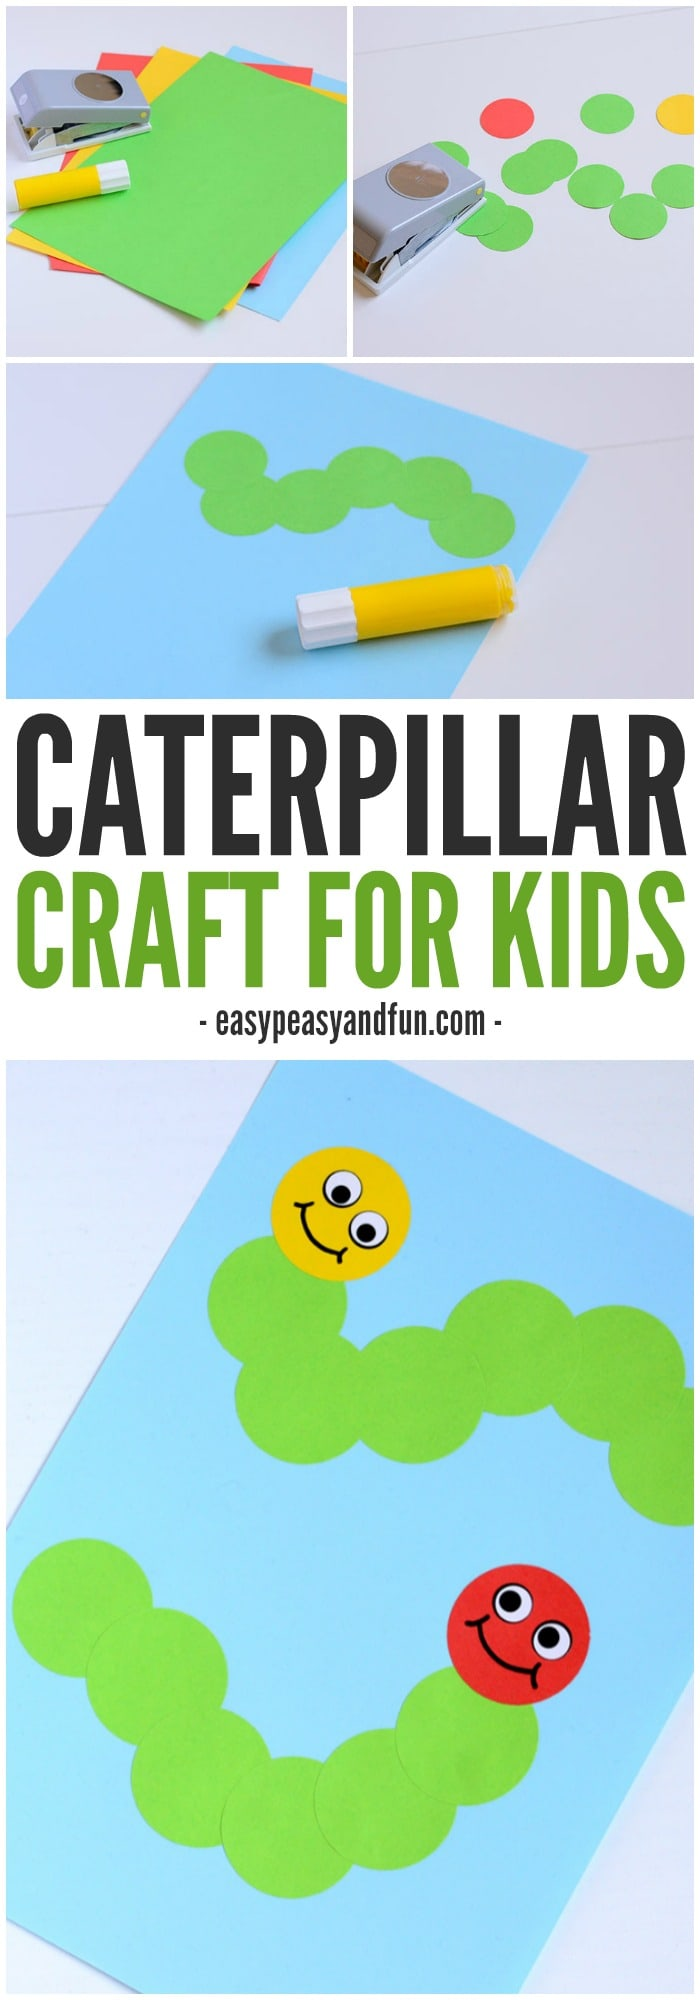 Caterpillar craft paper circle crafts for kids easy for Easy things to make out of paper for kids